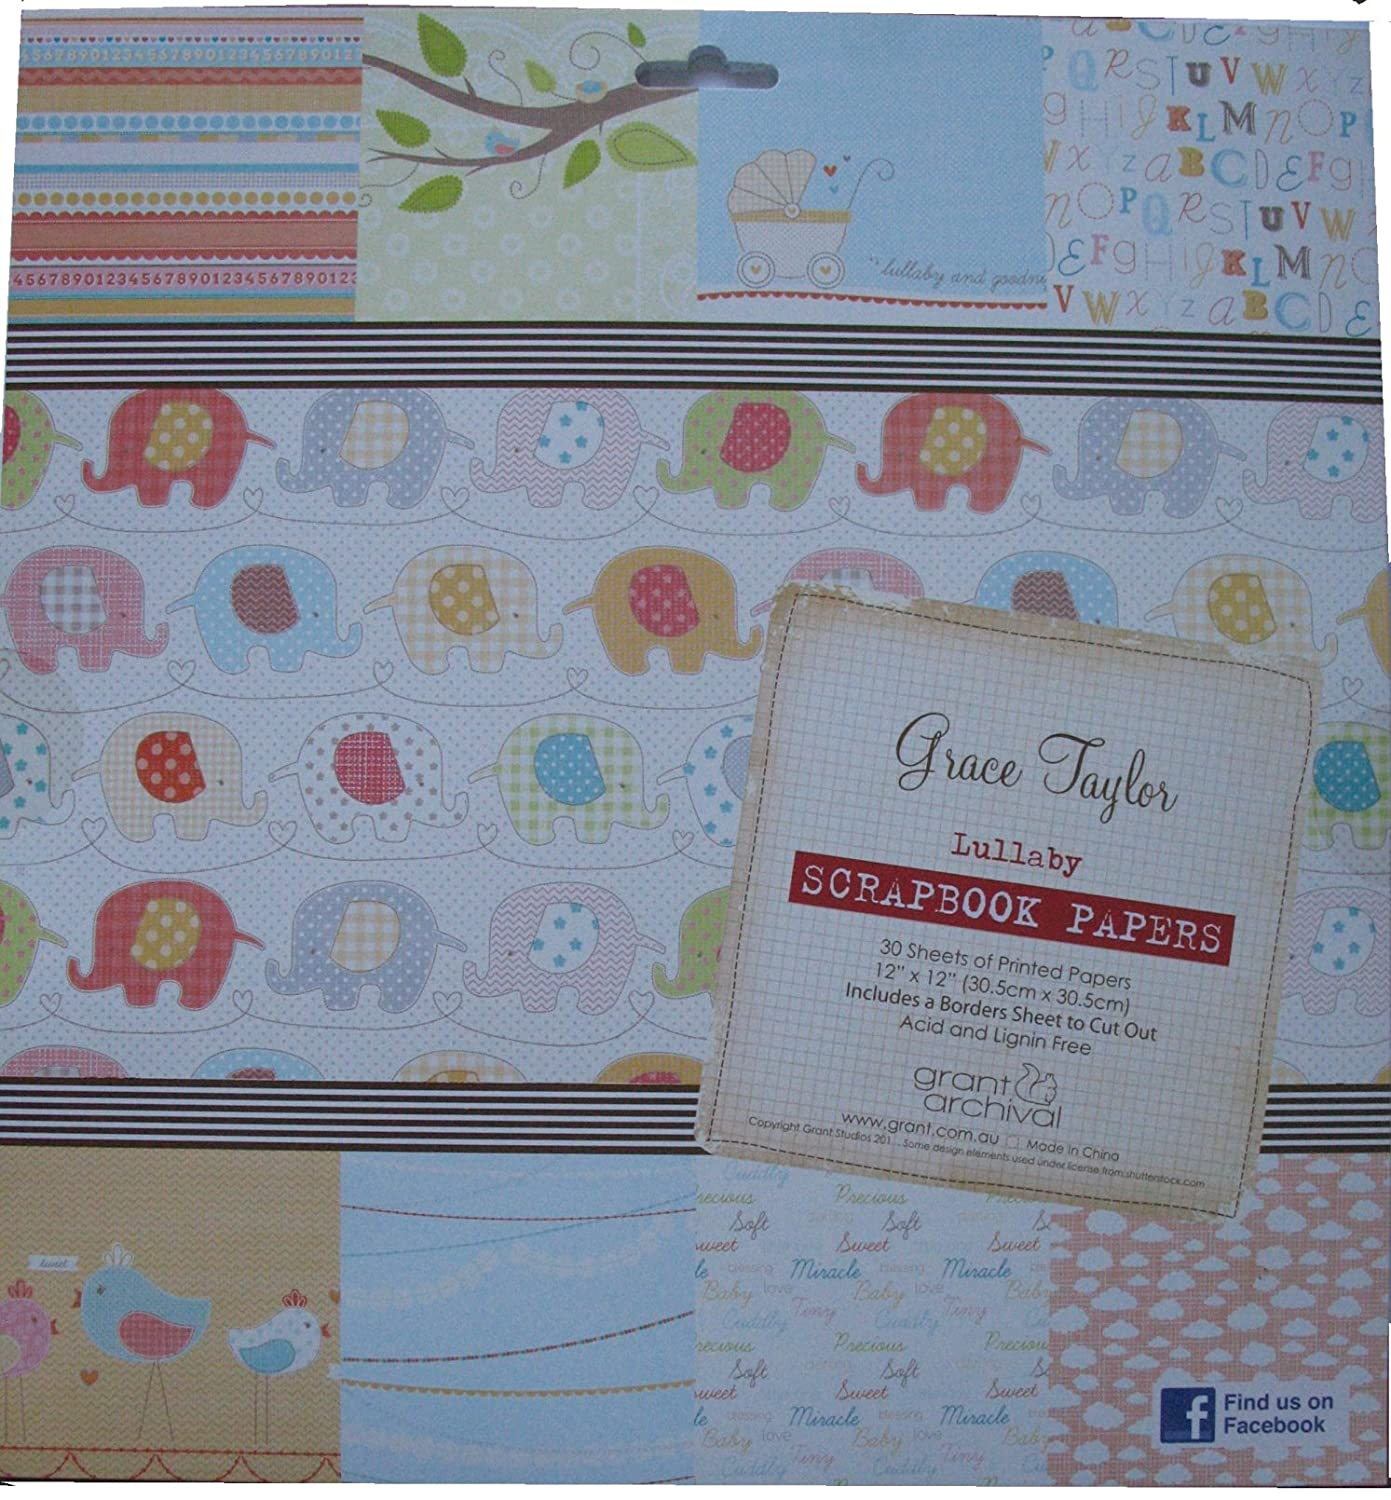 How to scrapbook on facebook